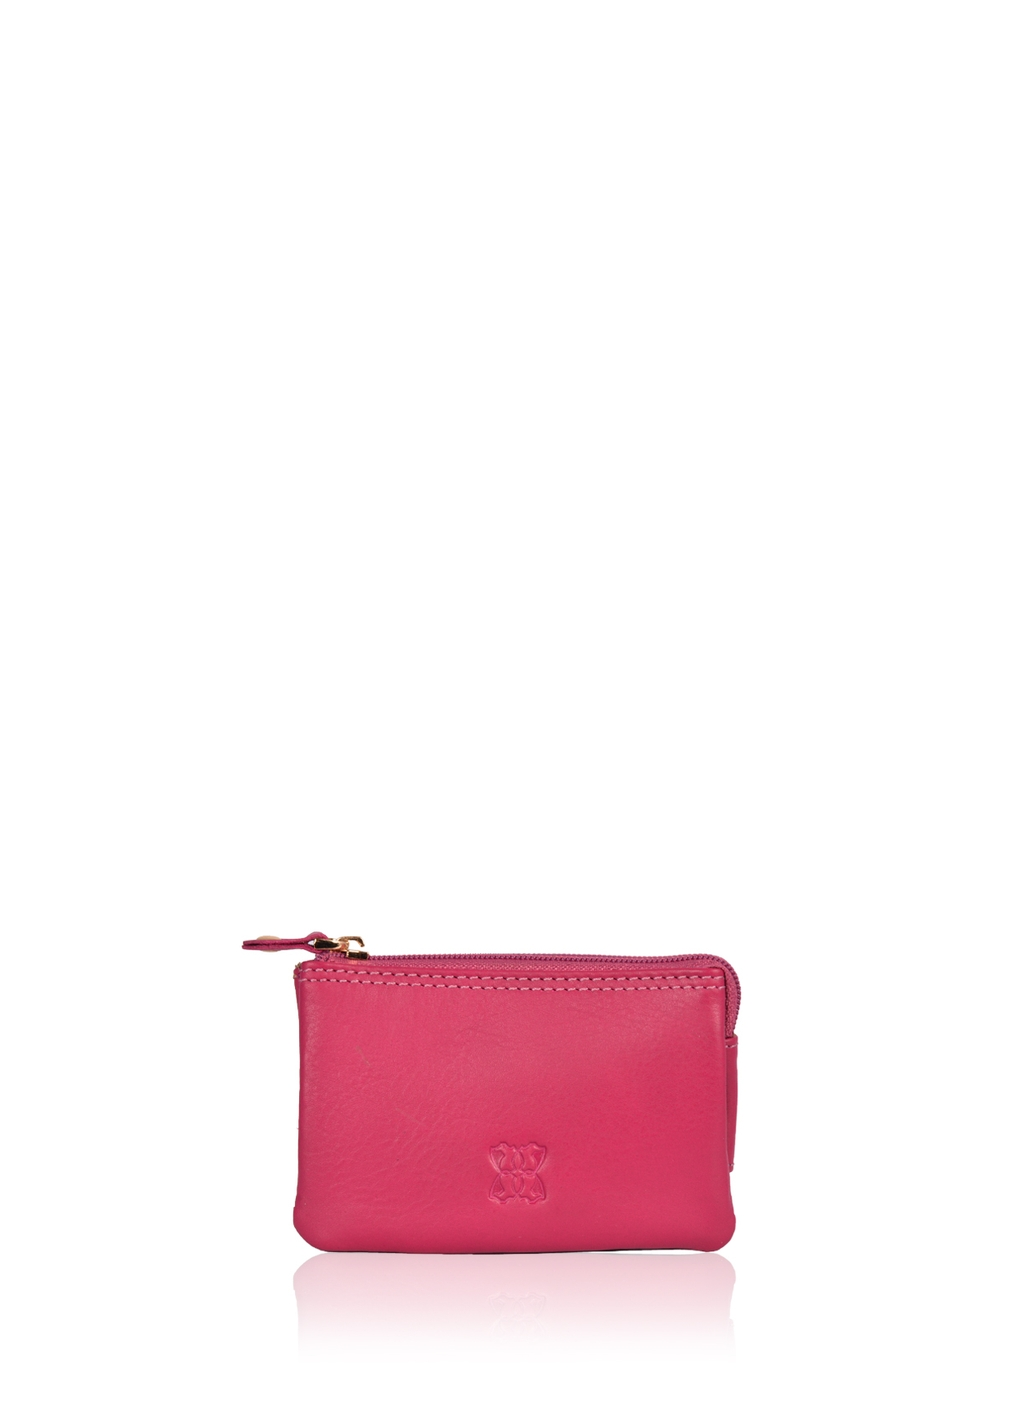 Leather Coin Purse in Cranberry Pink